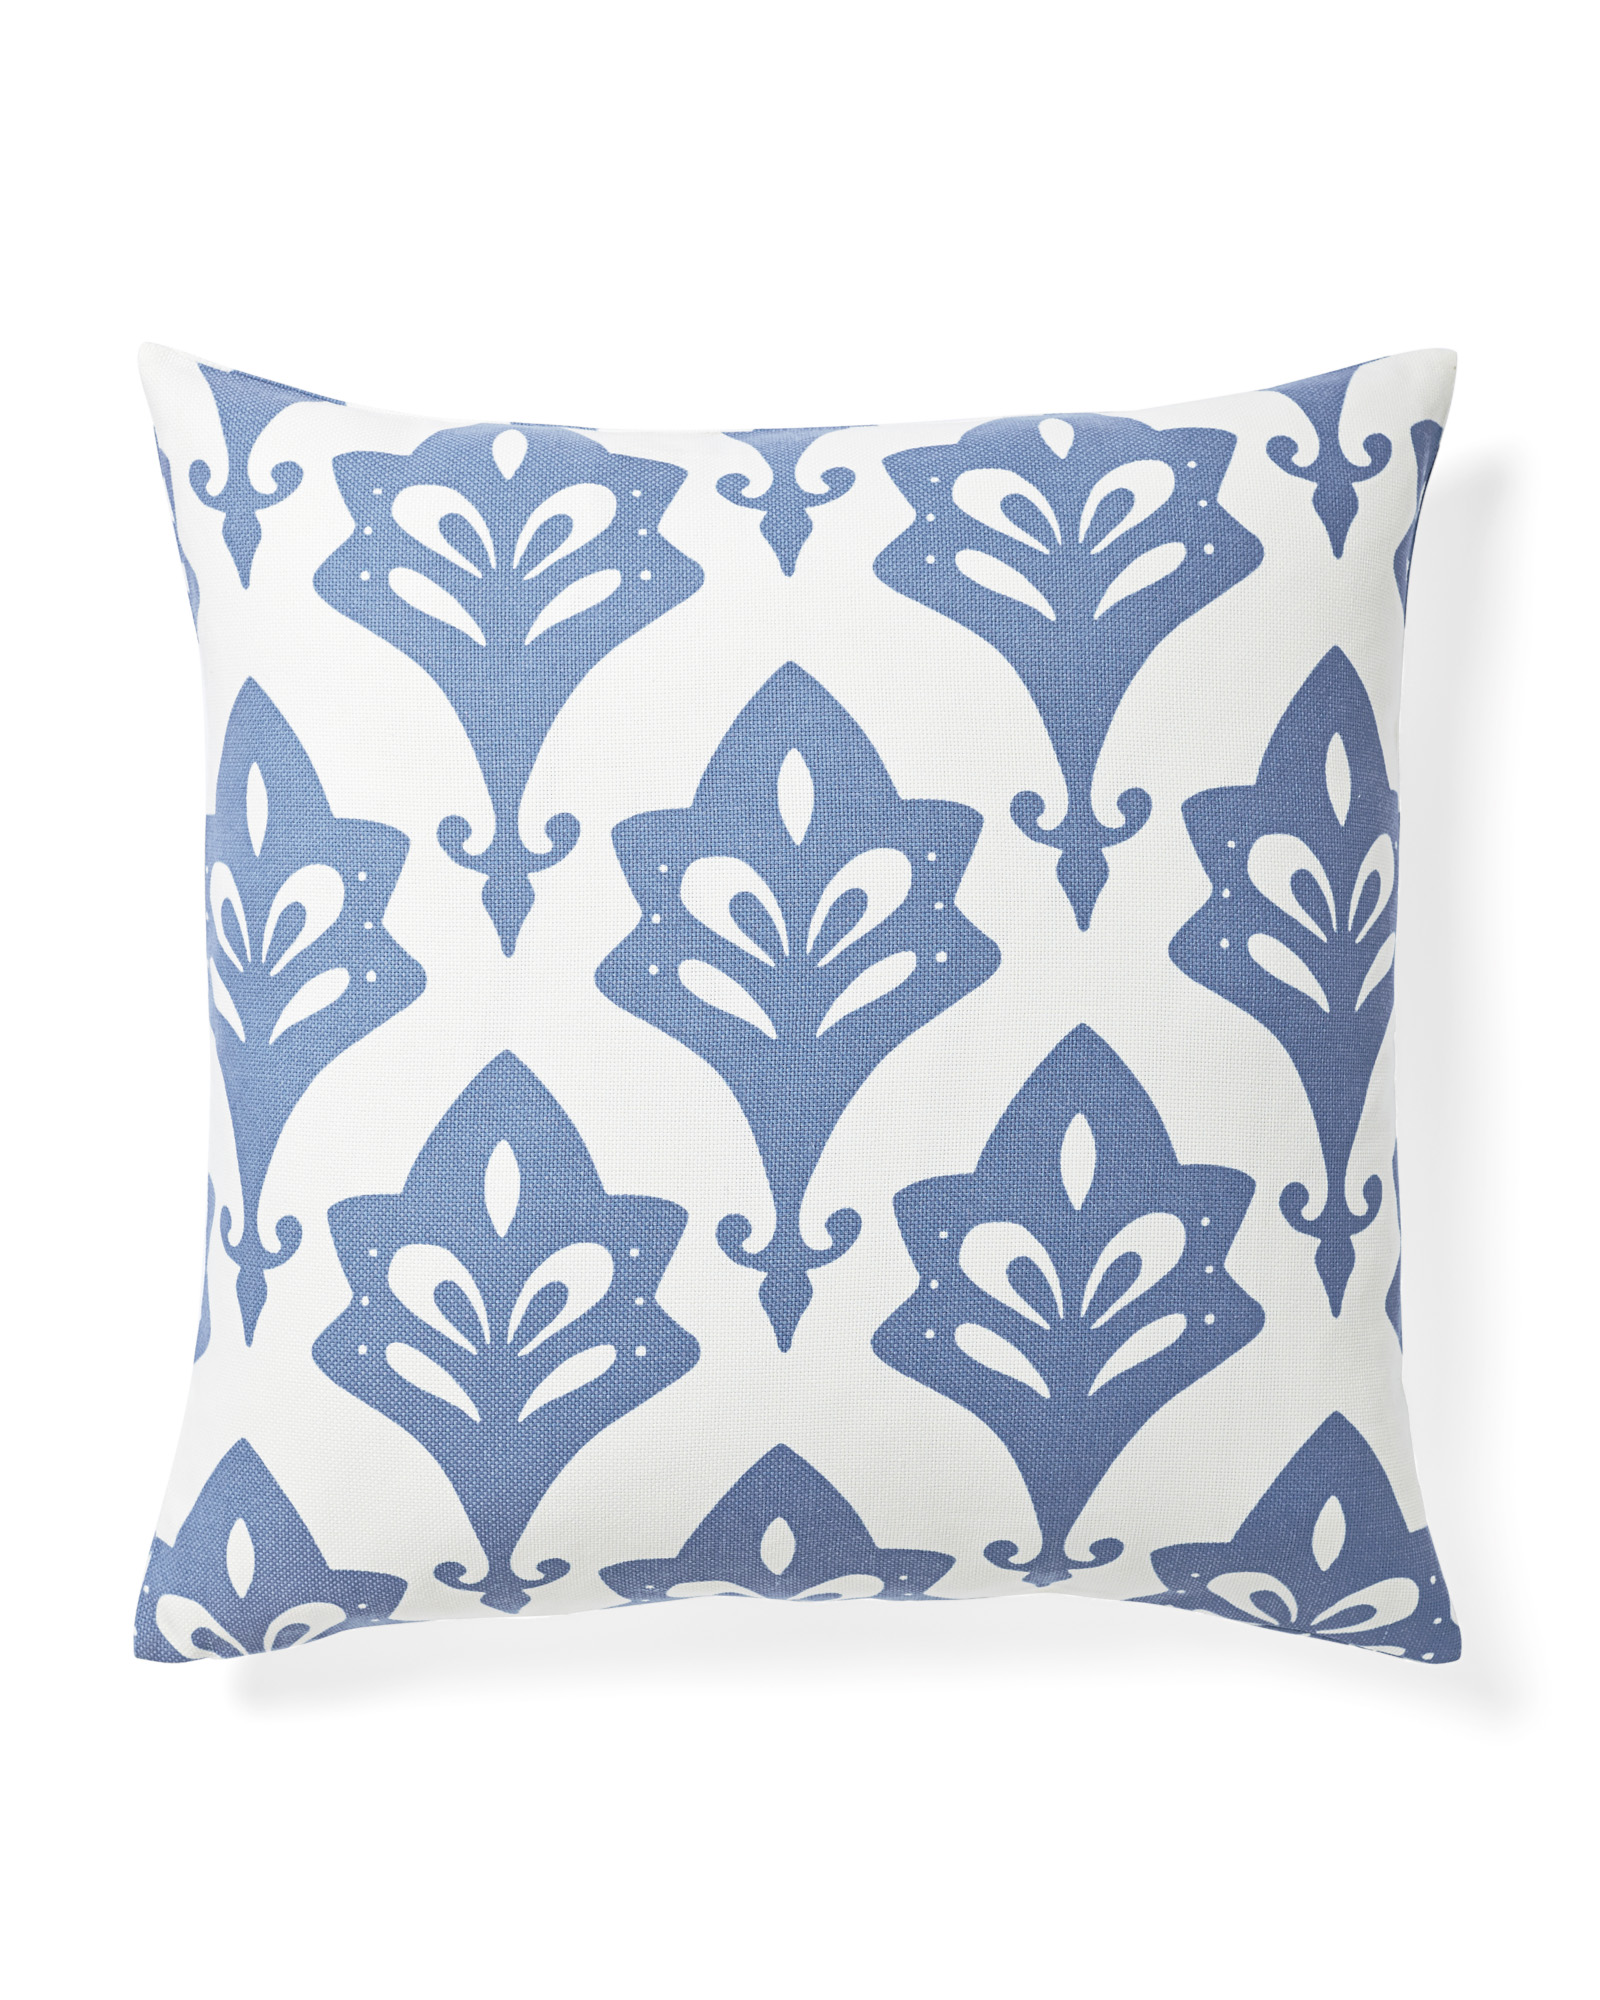 This outdoor pillow from Serena & Lily looks just as good inside as it does out! The whimsical print and weather friendly material makes it a perfect addition to any kid inhabited space!